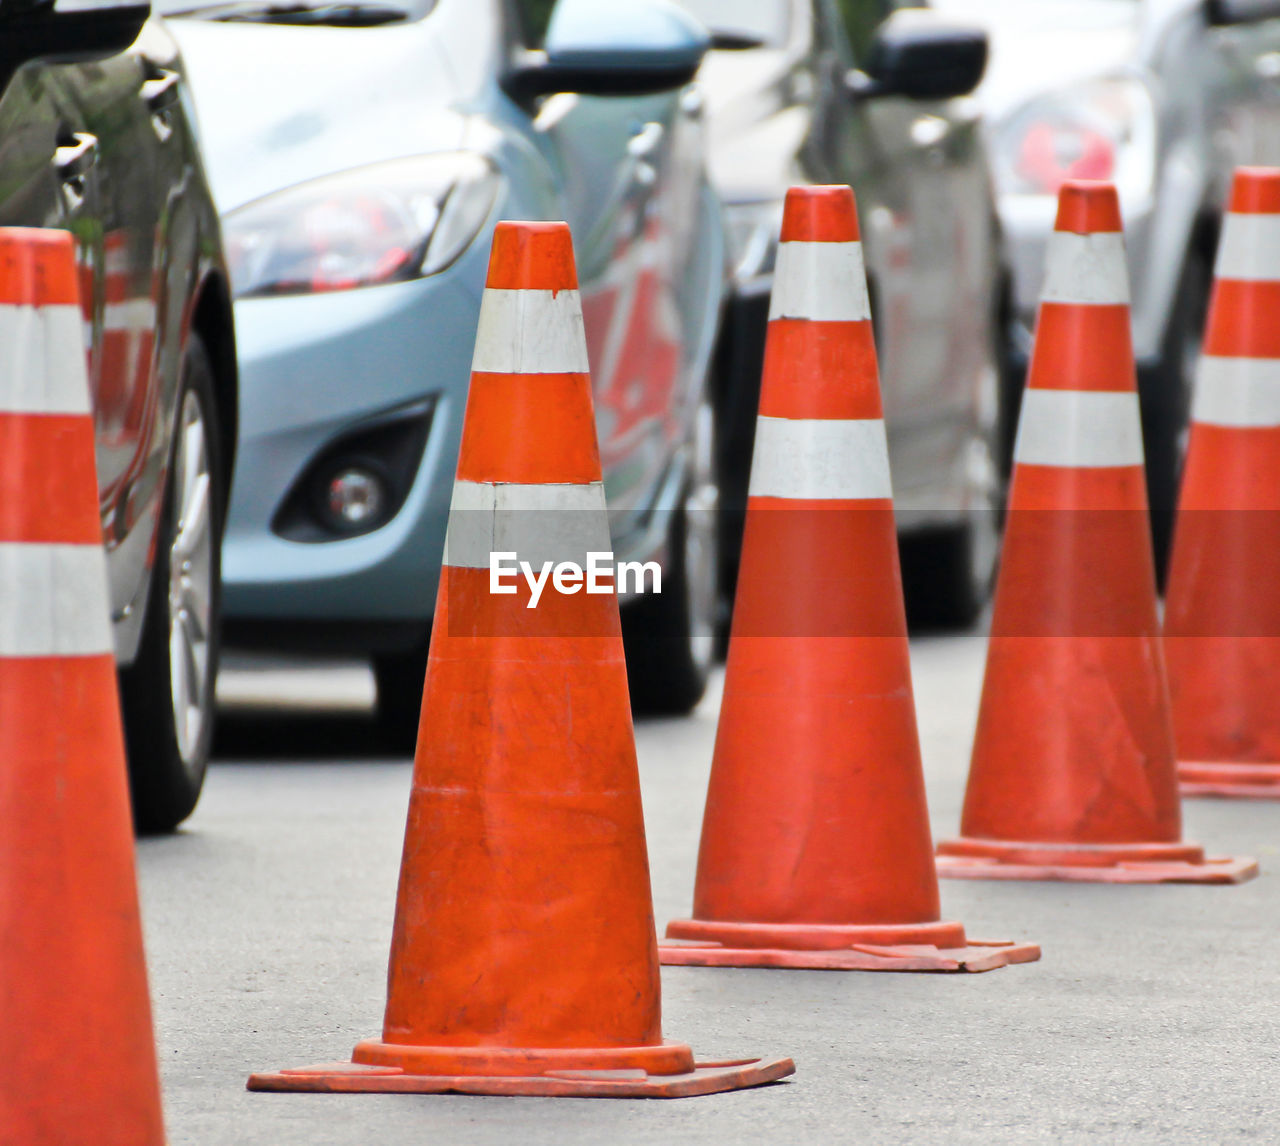 CLOSE-UP OF RED TRAFFIC CONES ON ROAD